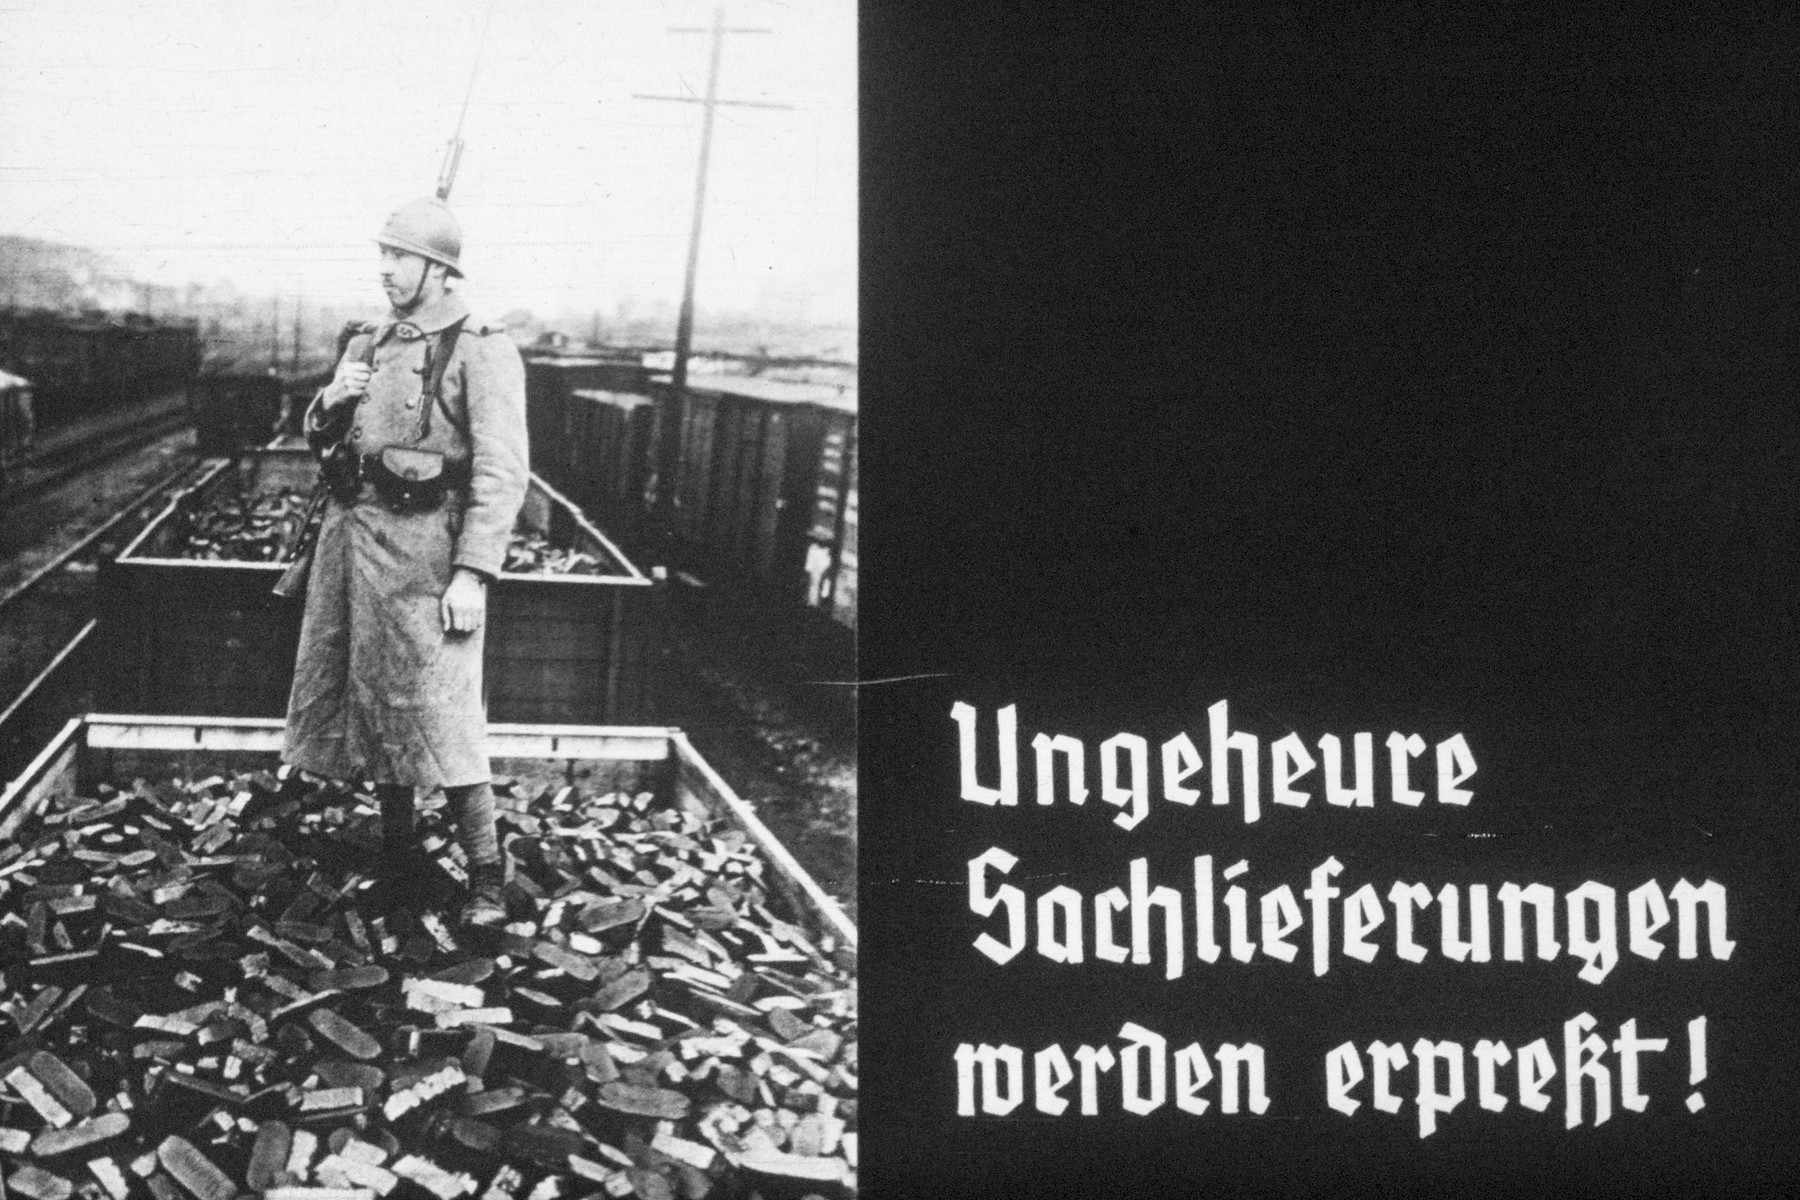 24th slide from a Hitler Youth slideshow about the aftermath of WWI, Versailles, how it was overcome and the rise of Nazism.  Ungeheure Sachlieferungen werden erpresst! // Sachlieferungen are being blackmailed!